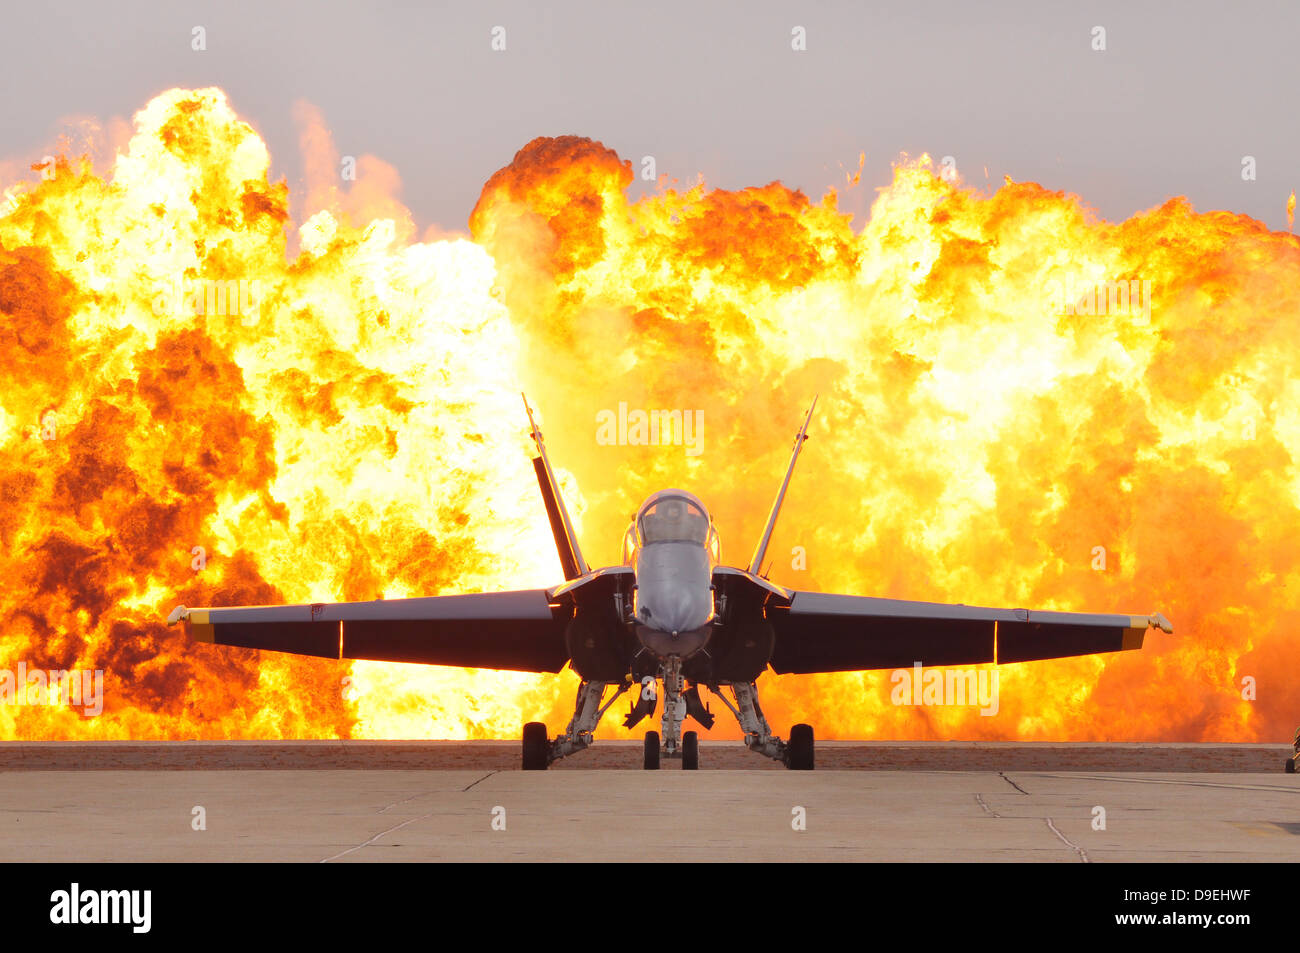 An F/A-18 Hornet sits on the flight line as a wall of fire detonates behind it. - Stock Image